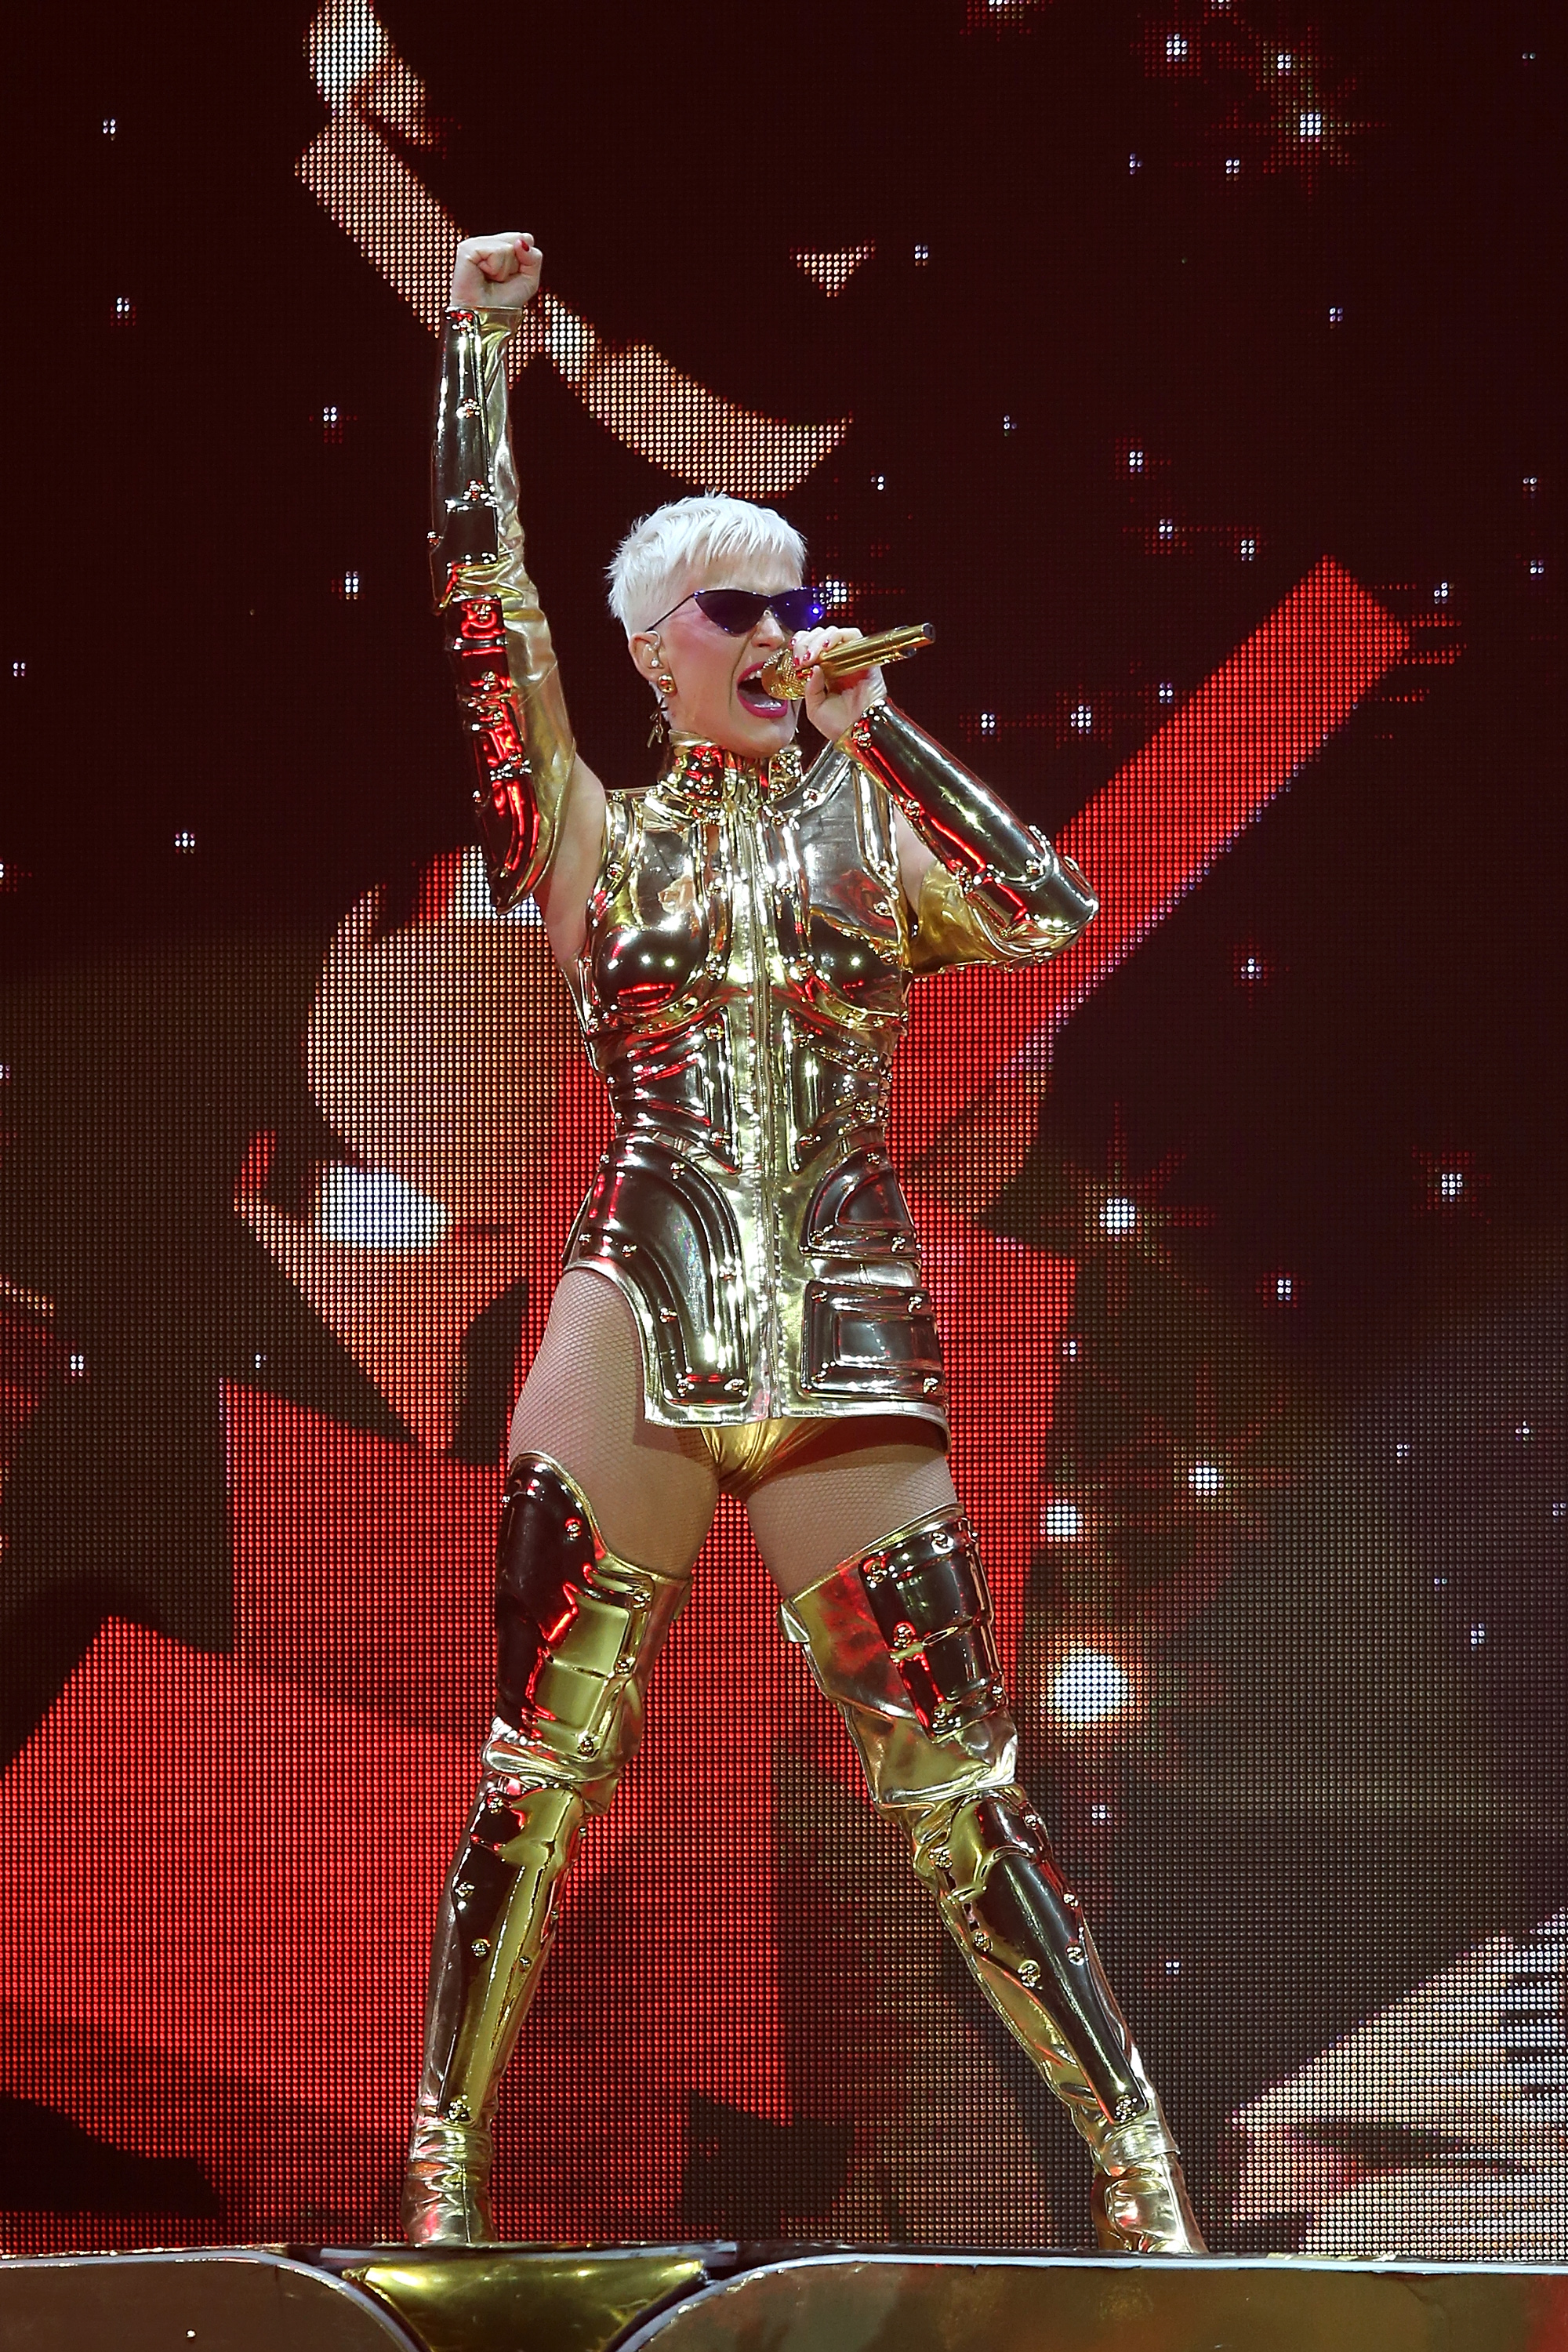 During her 'Witness' tour Katy Perry performs at Perth Arena on July 24, 2018 in Perth, Australia. (Photo by Paul Kane/Getty Images)